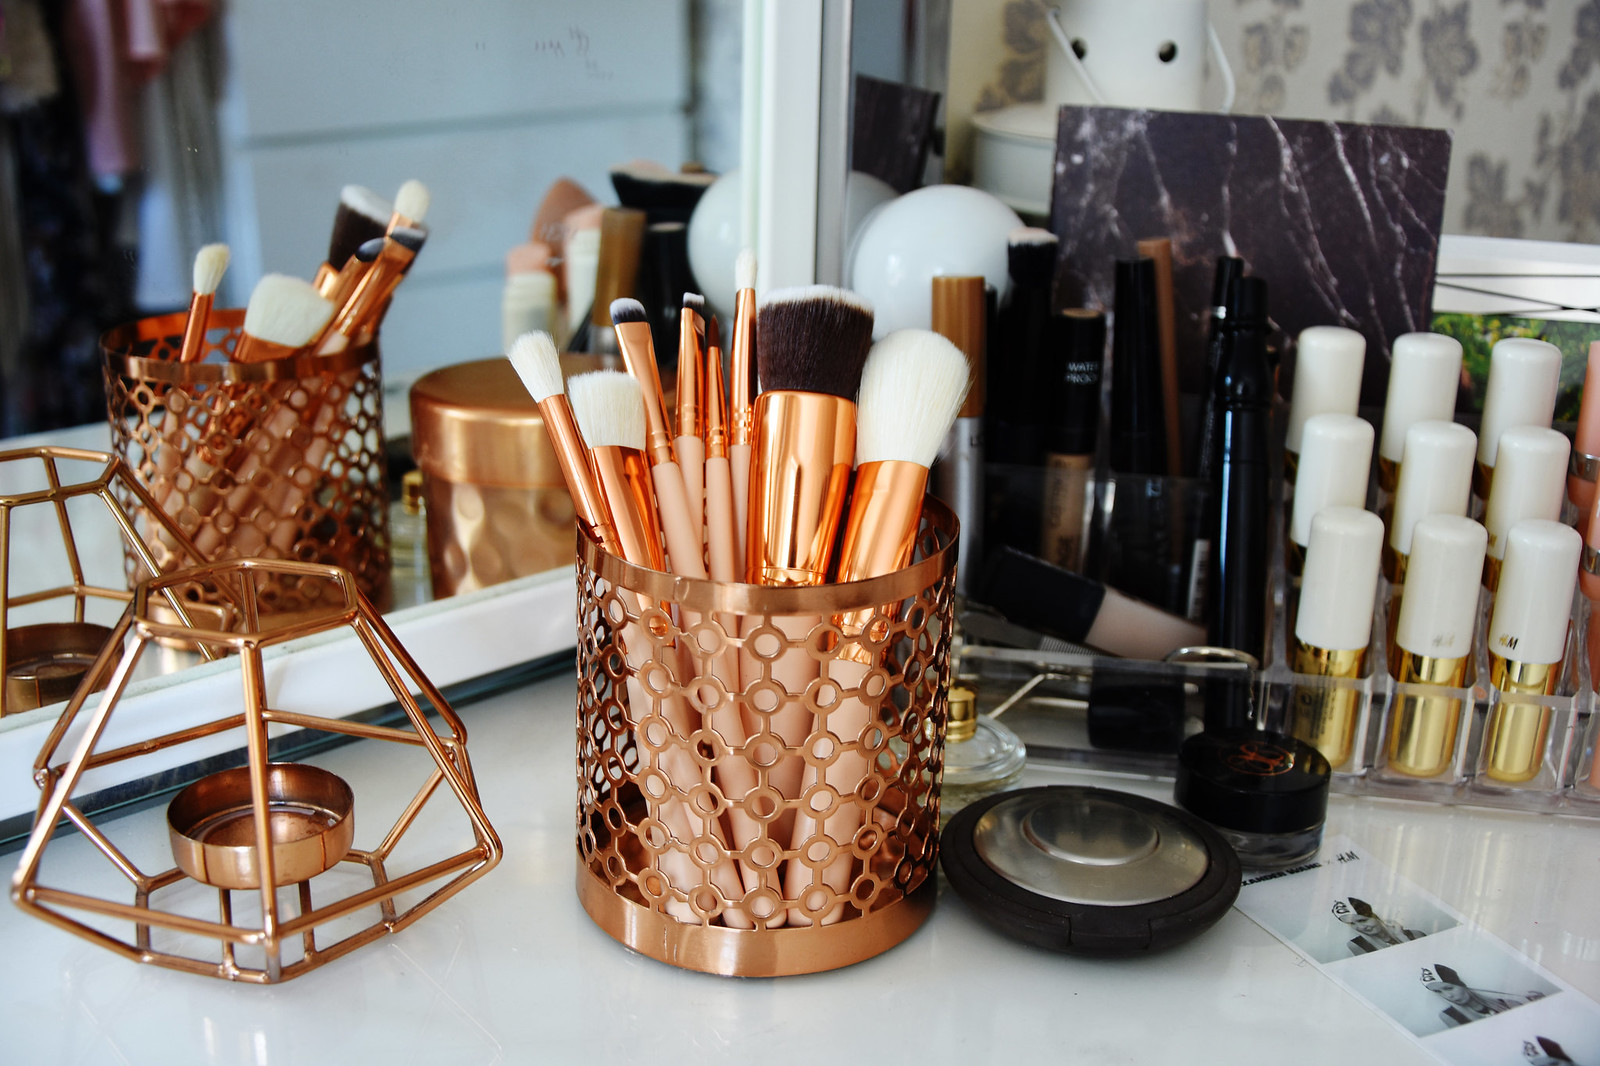 Makeup brushes from Ebay dupe for Zoeva